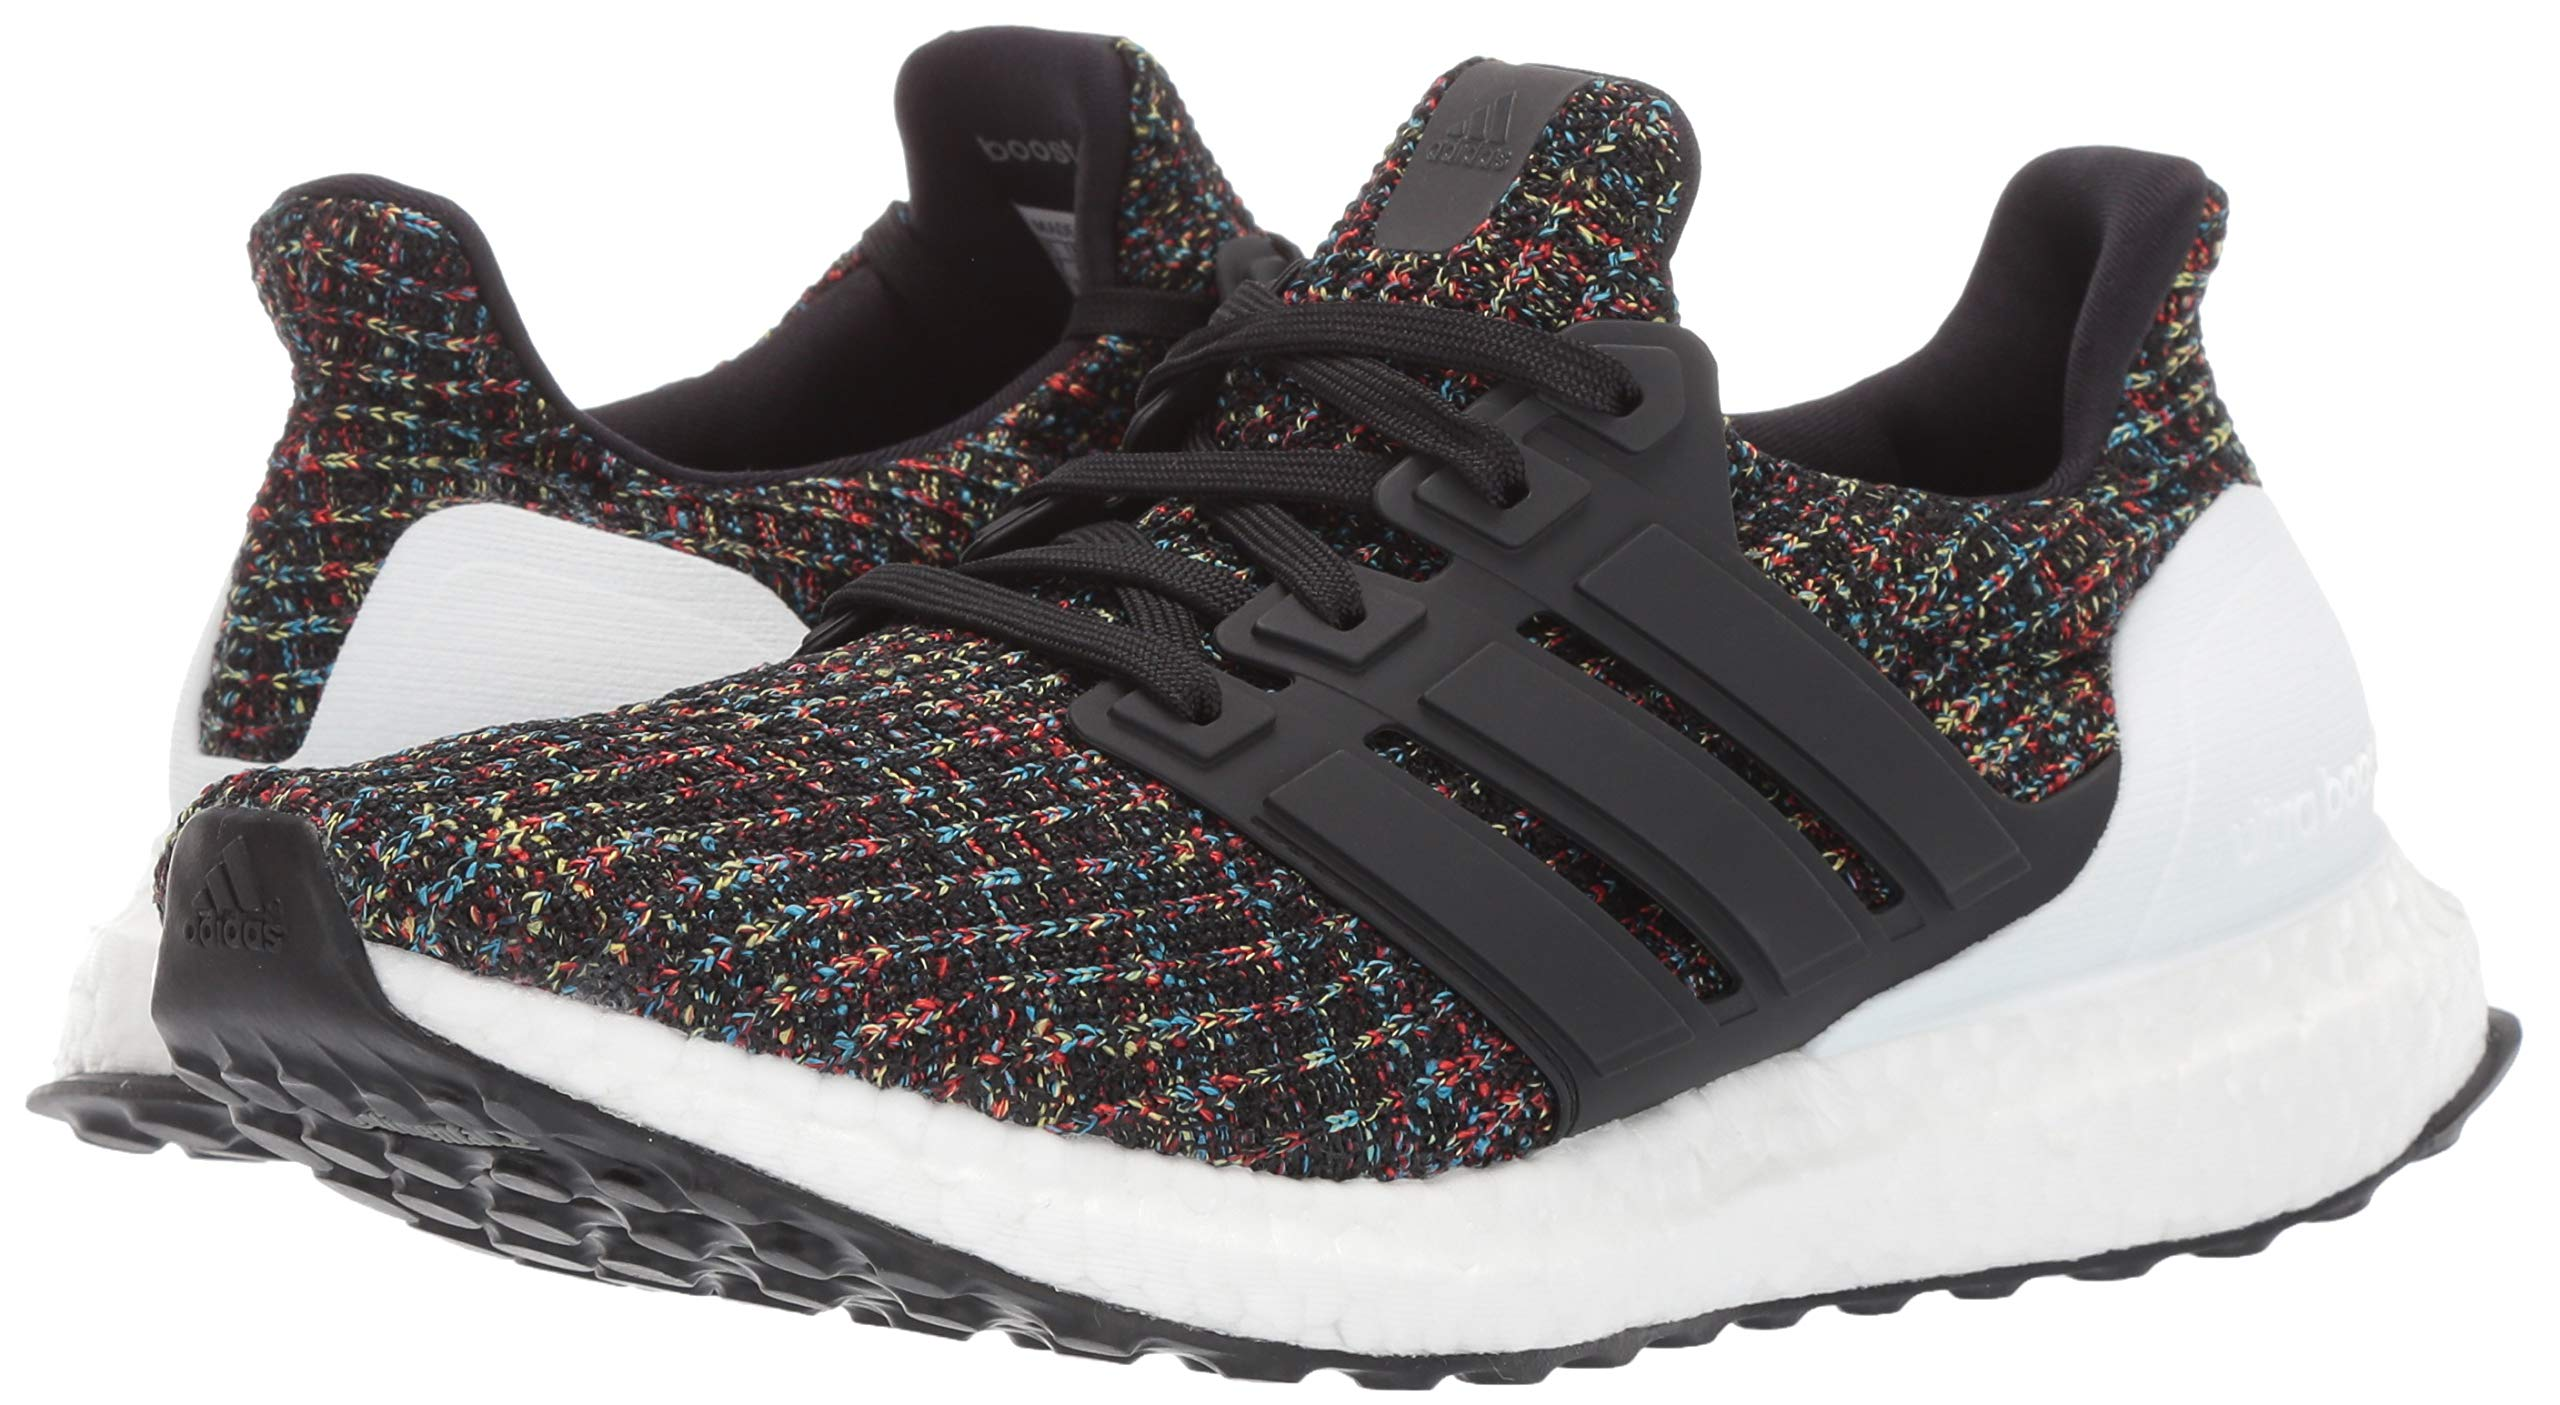 adidas Unisex Ultraboost, Black/White/Active red, 4 M US Big Kid by adidas (Image #6)